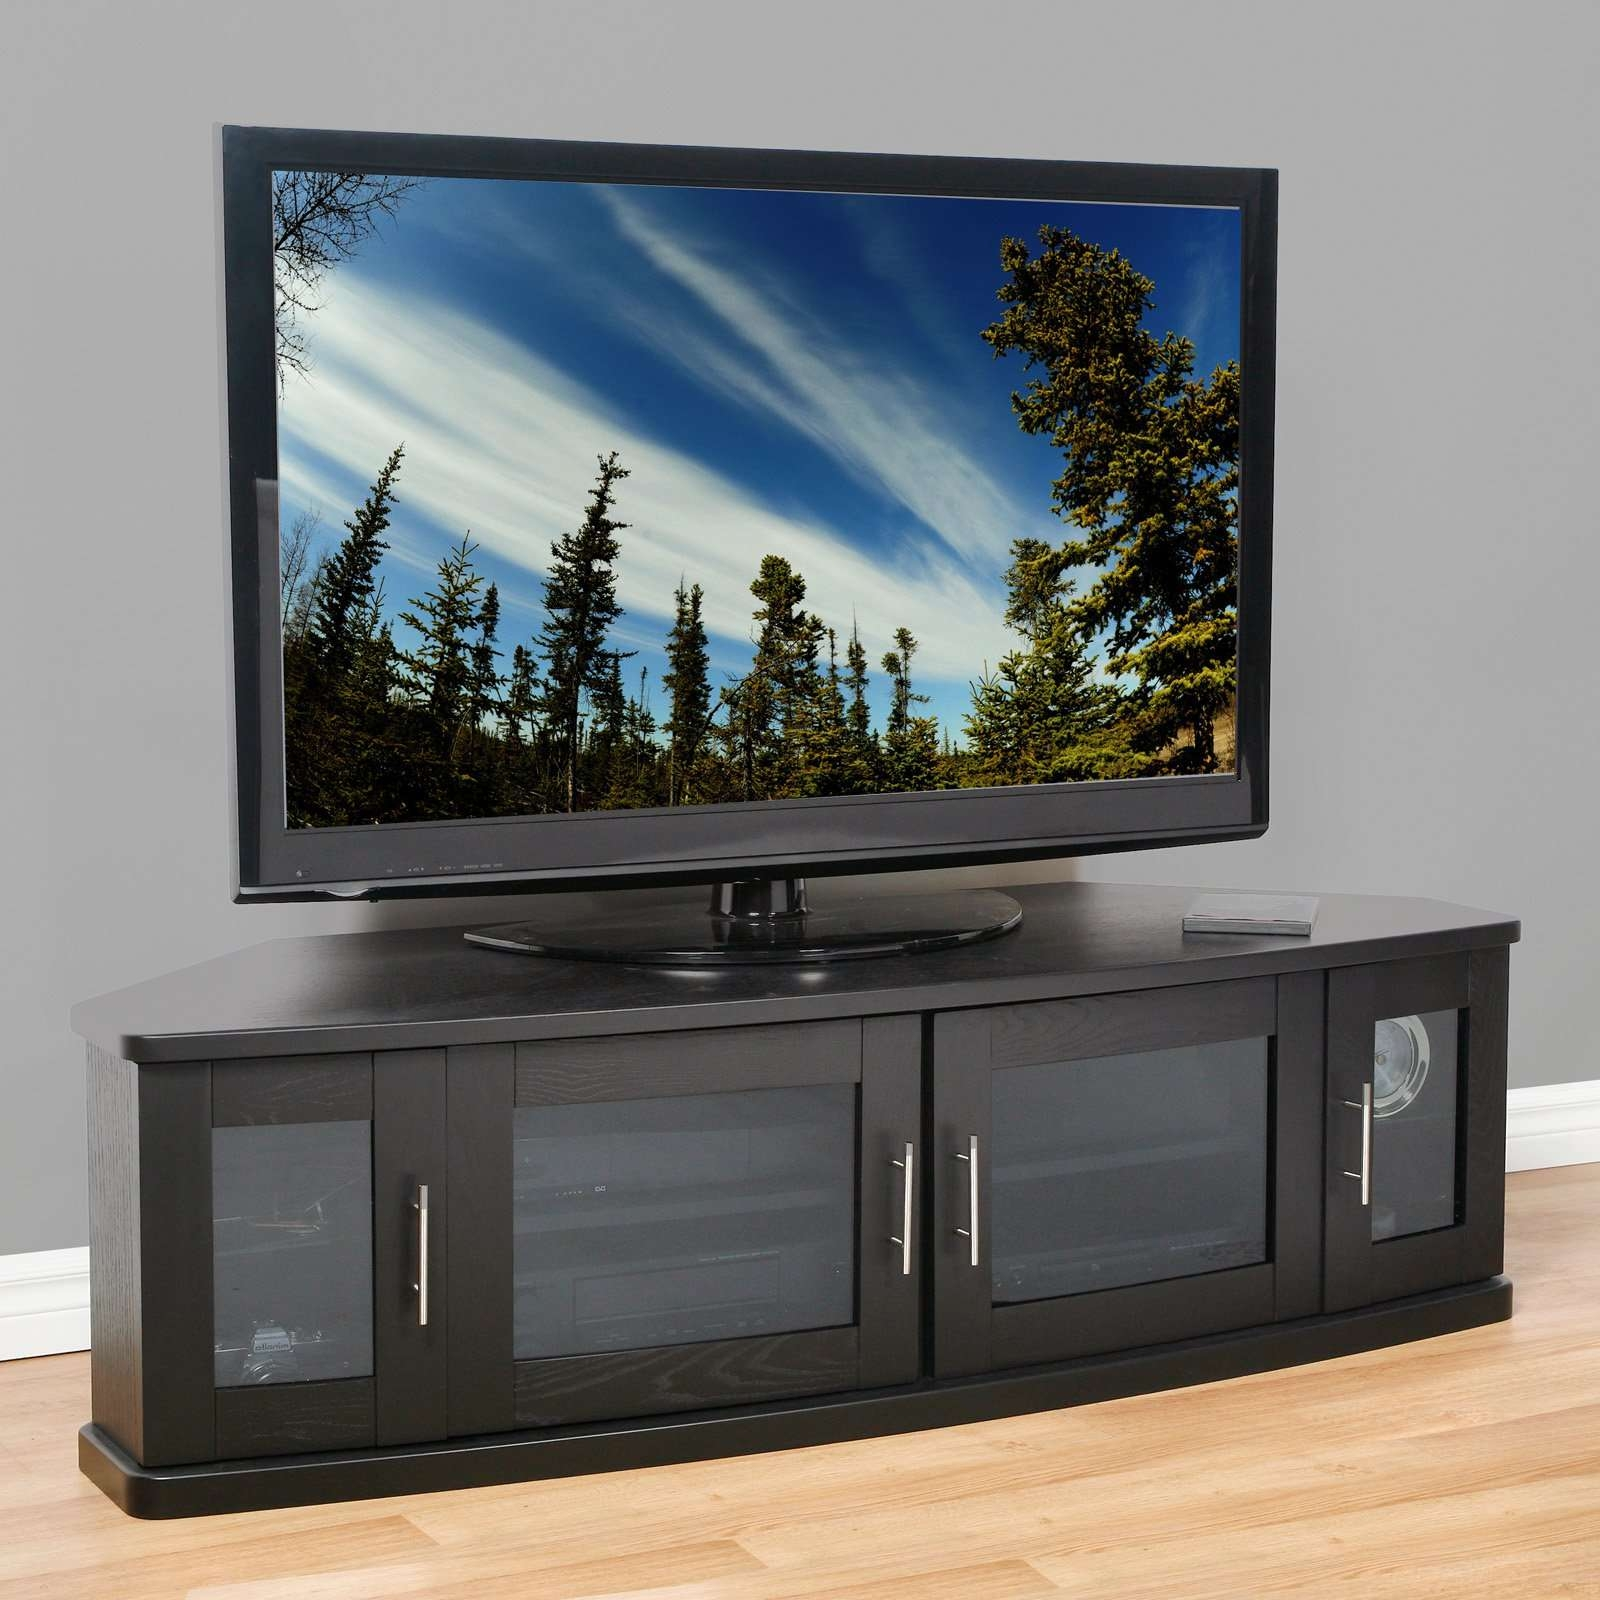 Modern Black Wooden Tv Stand With Frosted Glass Doors Of Dazzling Intended For Wooden Tv Cabinets With Glass Doors (View 8 of 20)